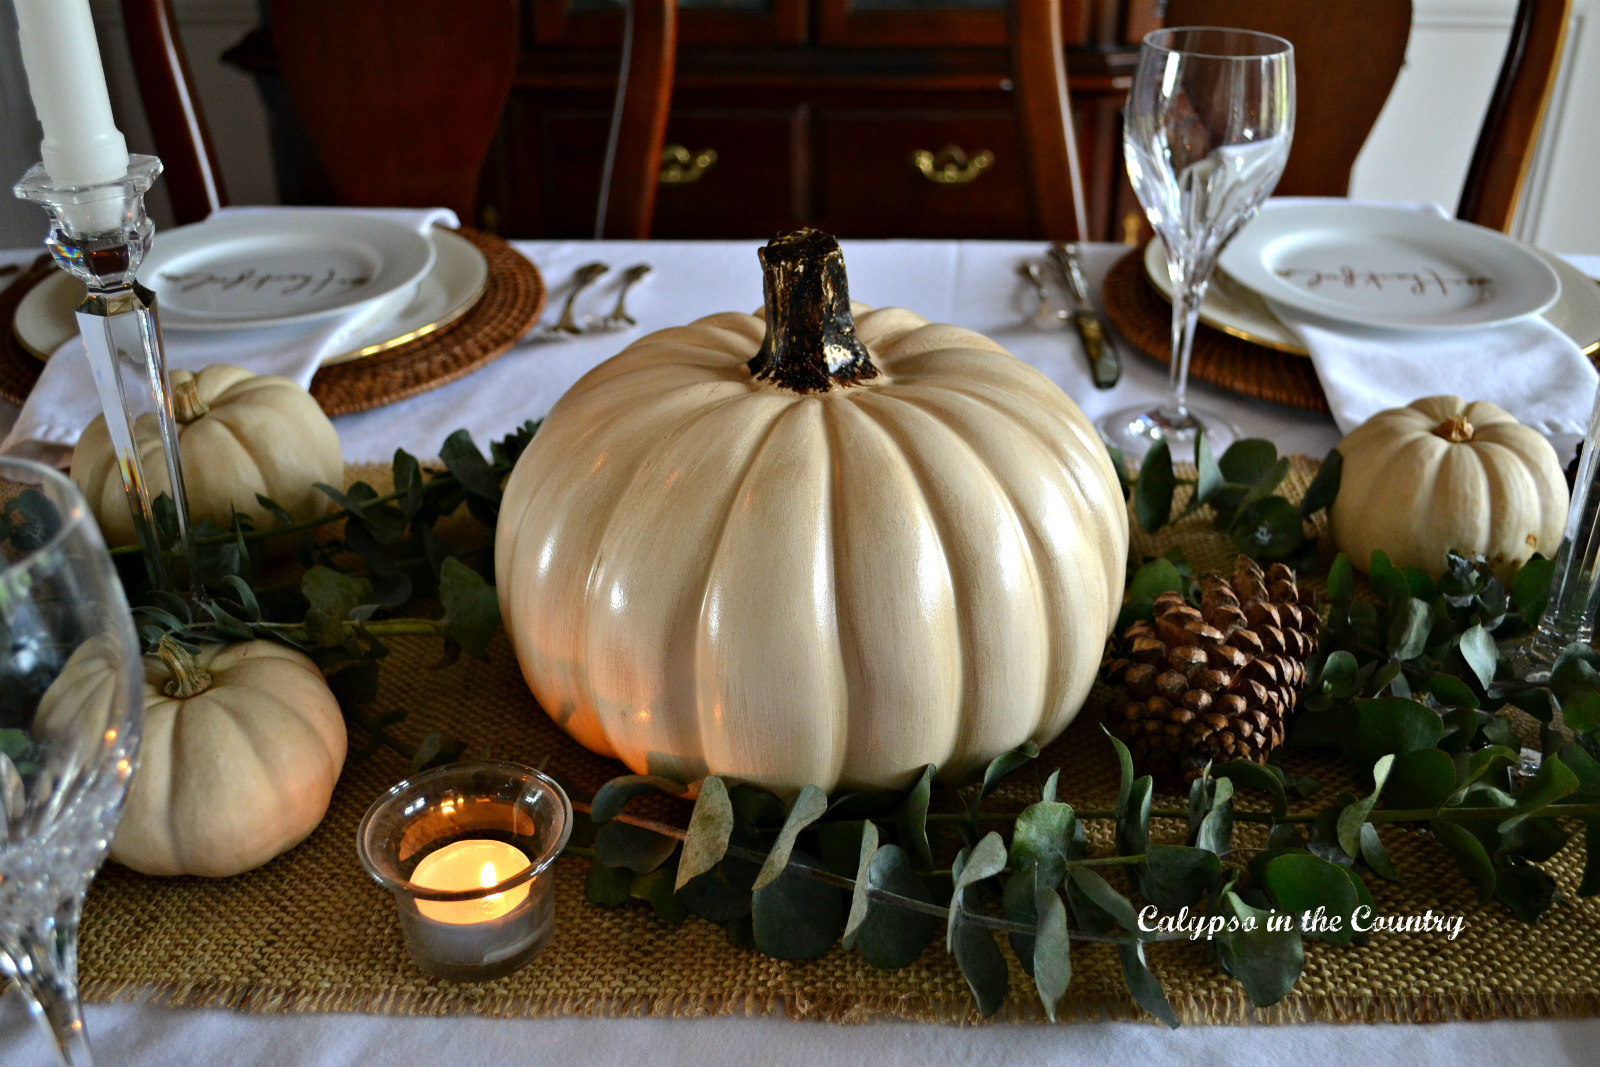 Tablescape with White Pumpkins